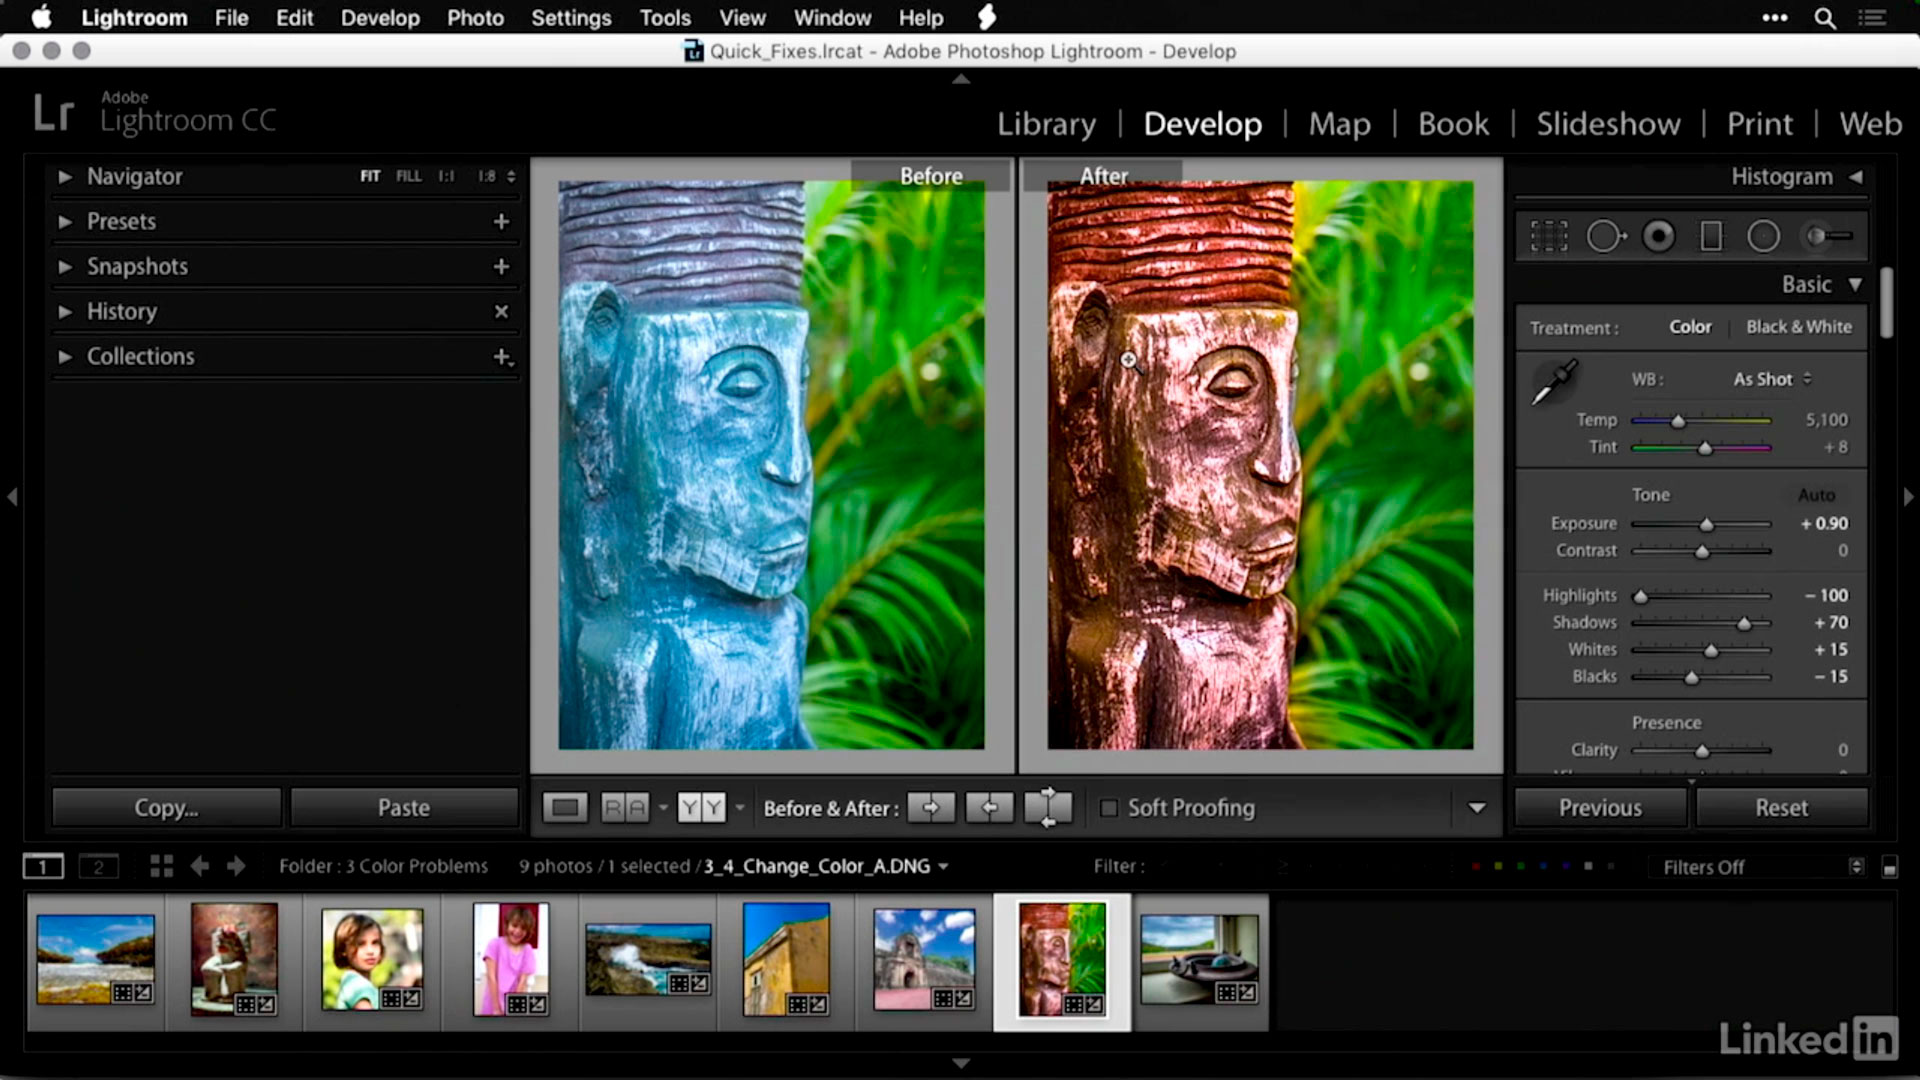 How do I change the color of an object in Lightroom